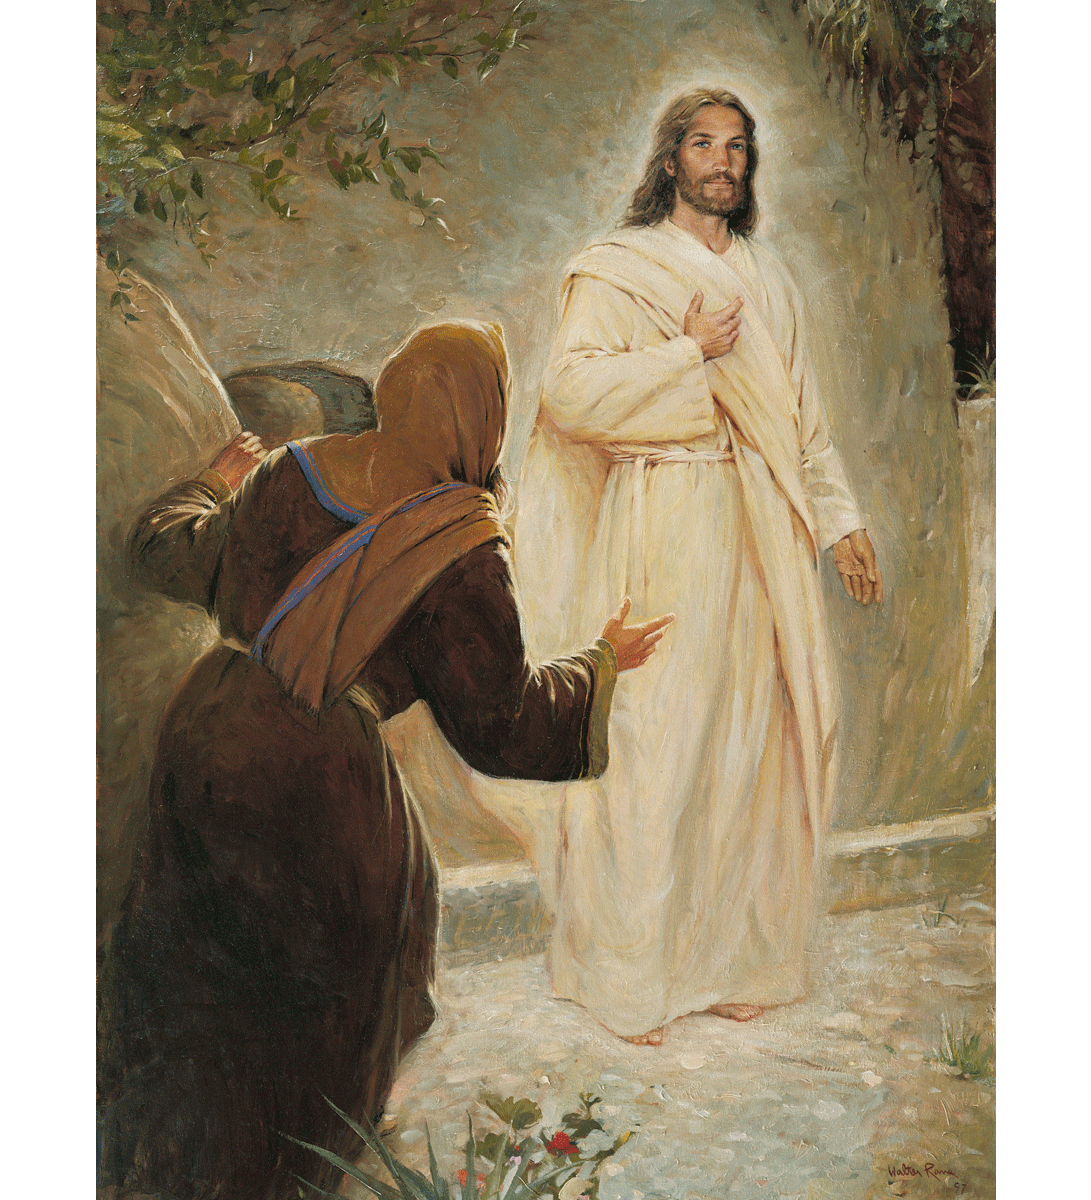 The Resurrected Christ